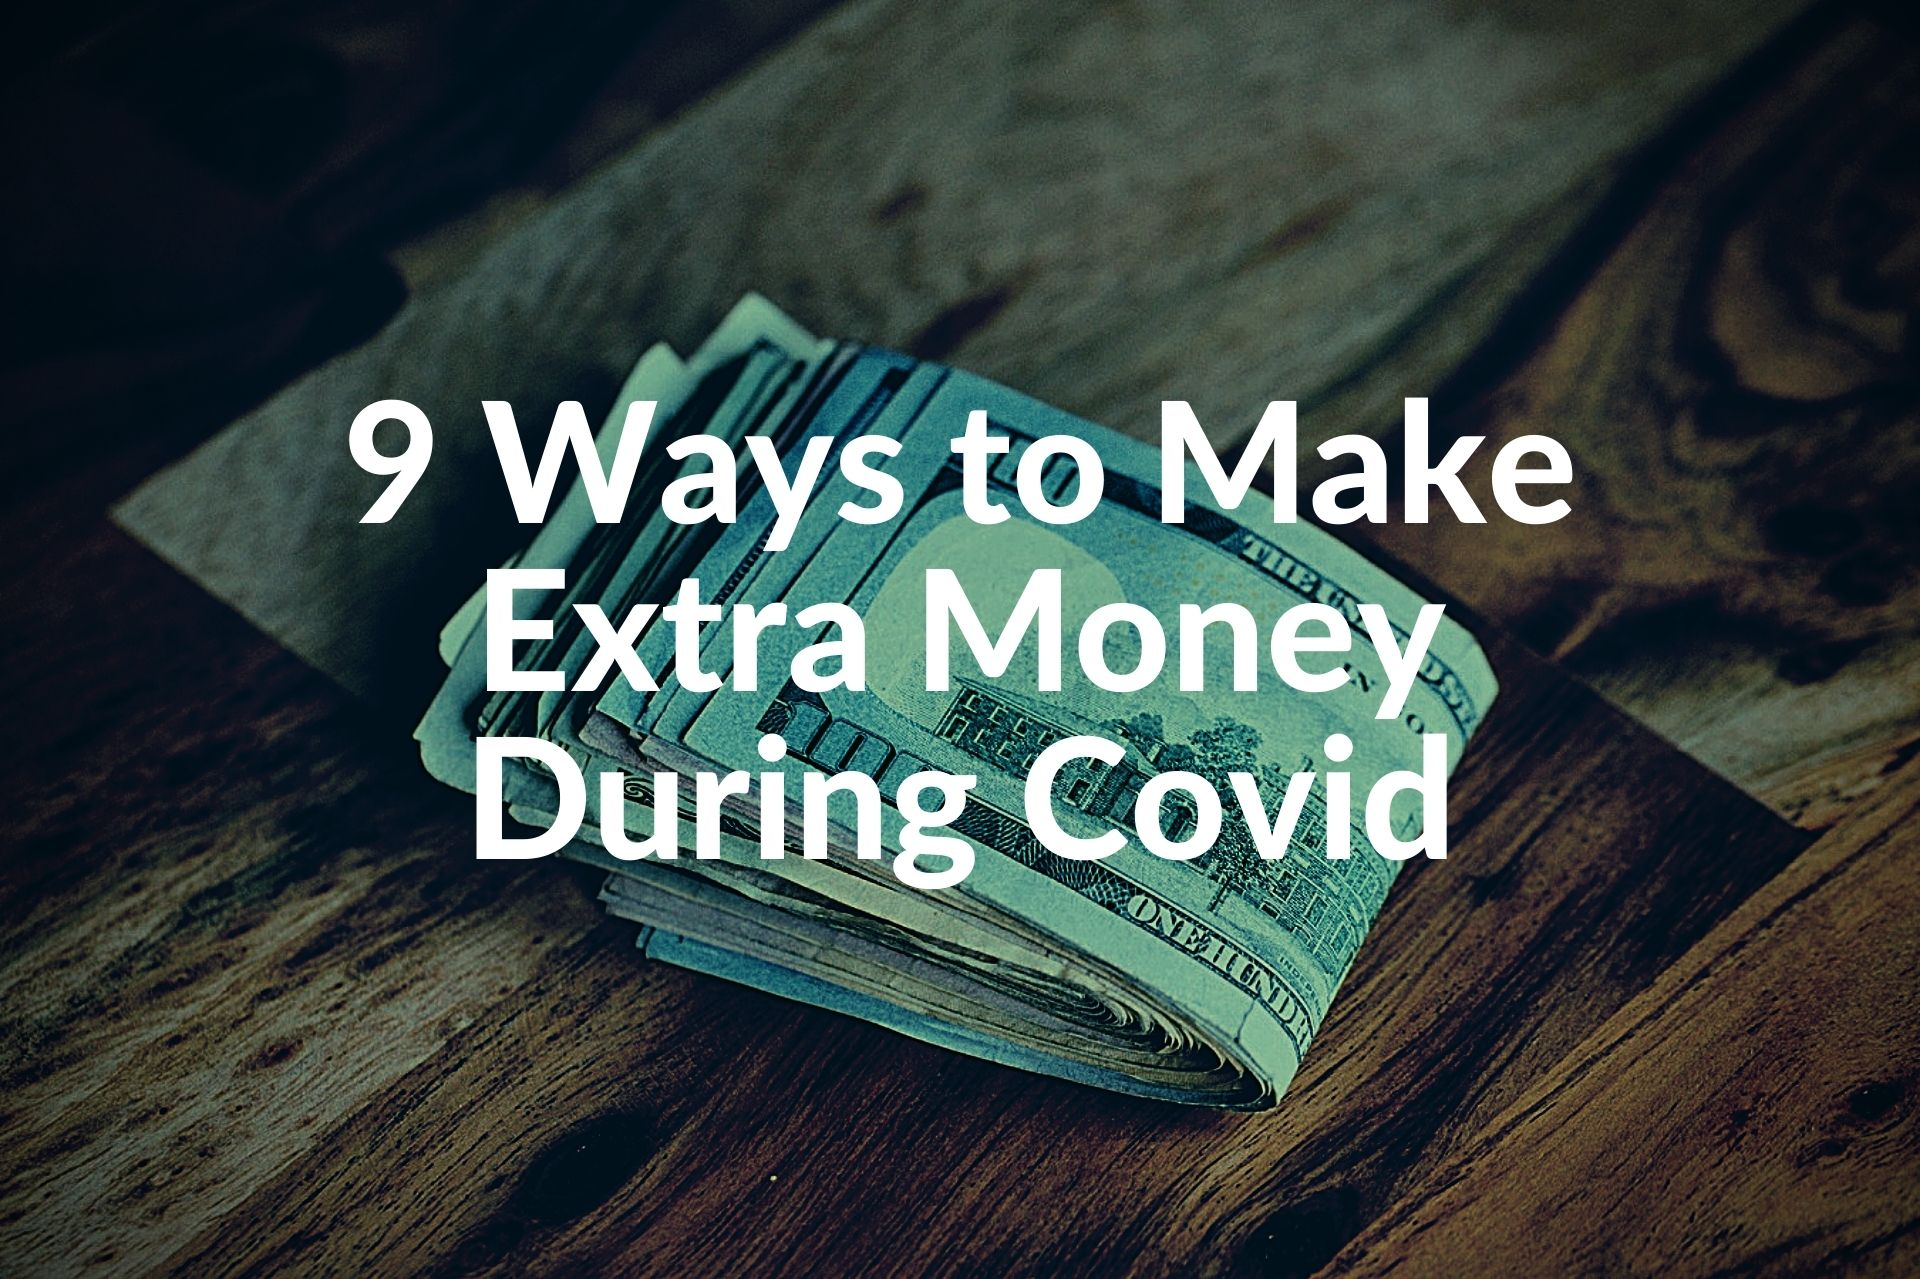 9 Ways to Make Extra Money During Covid